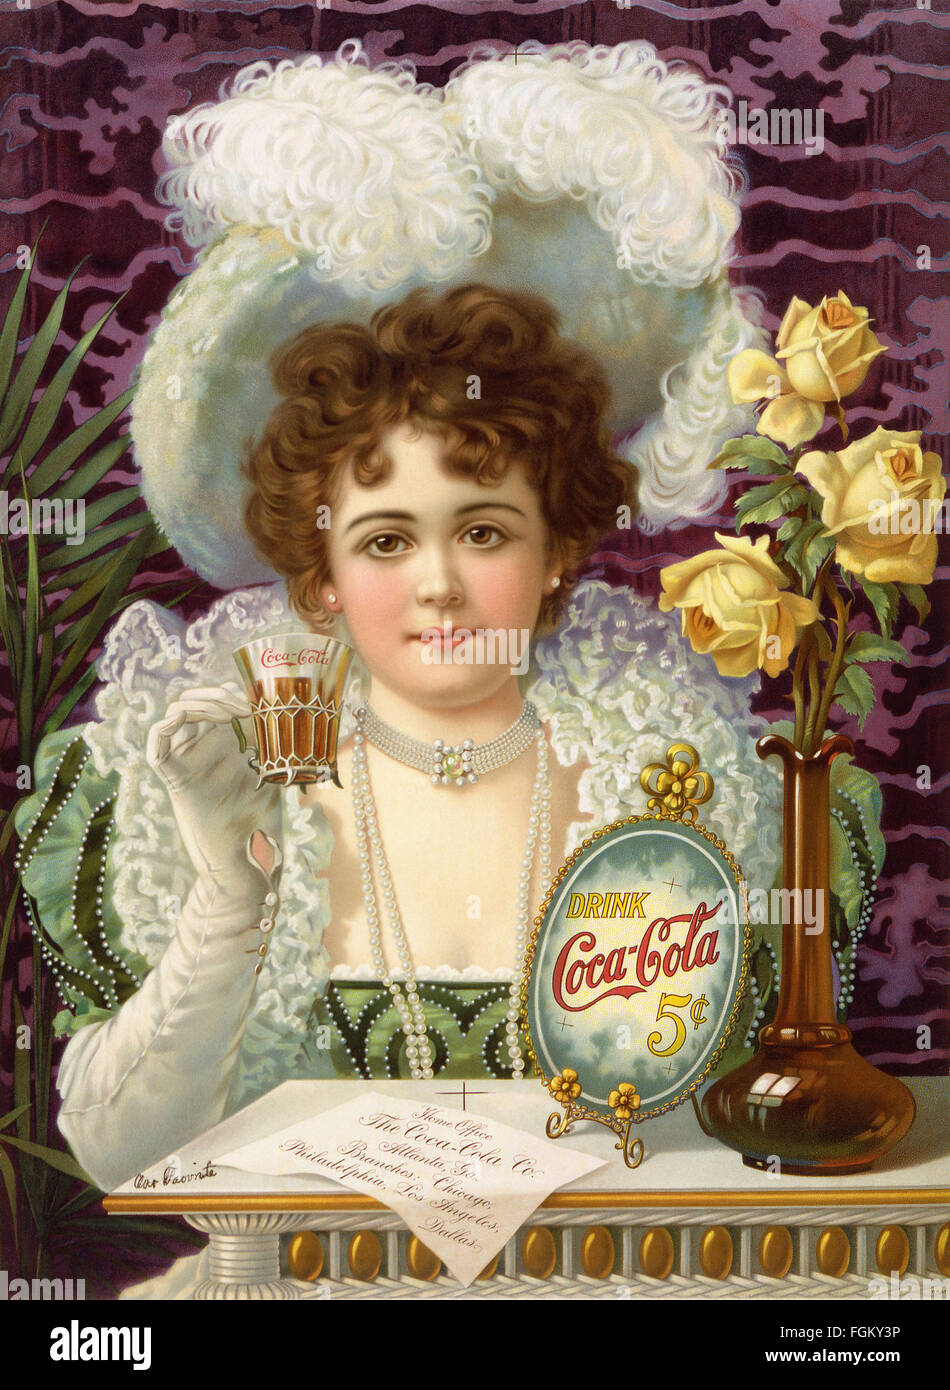 COCA-COLA lithographic advertisement about 1895.  The model is Hilda Clark (1872-1932) who appeared on many Coca - Stock Image